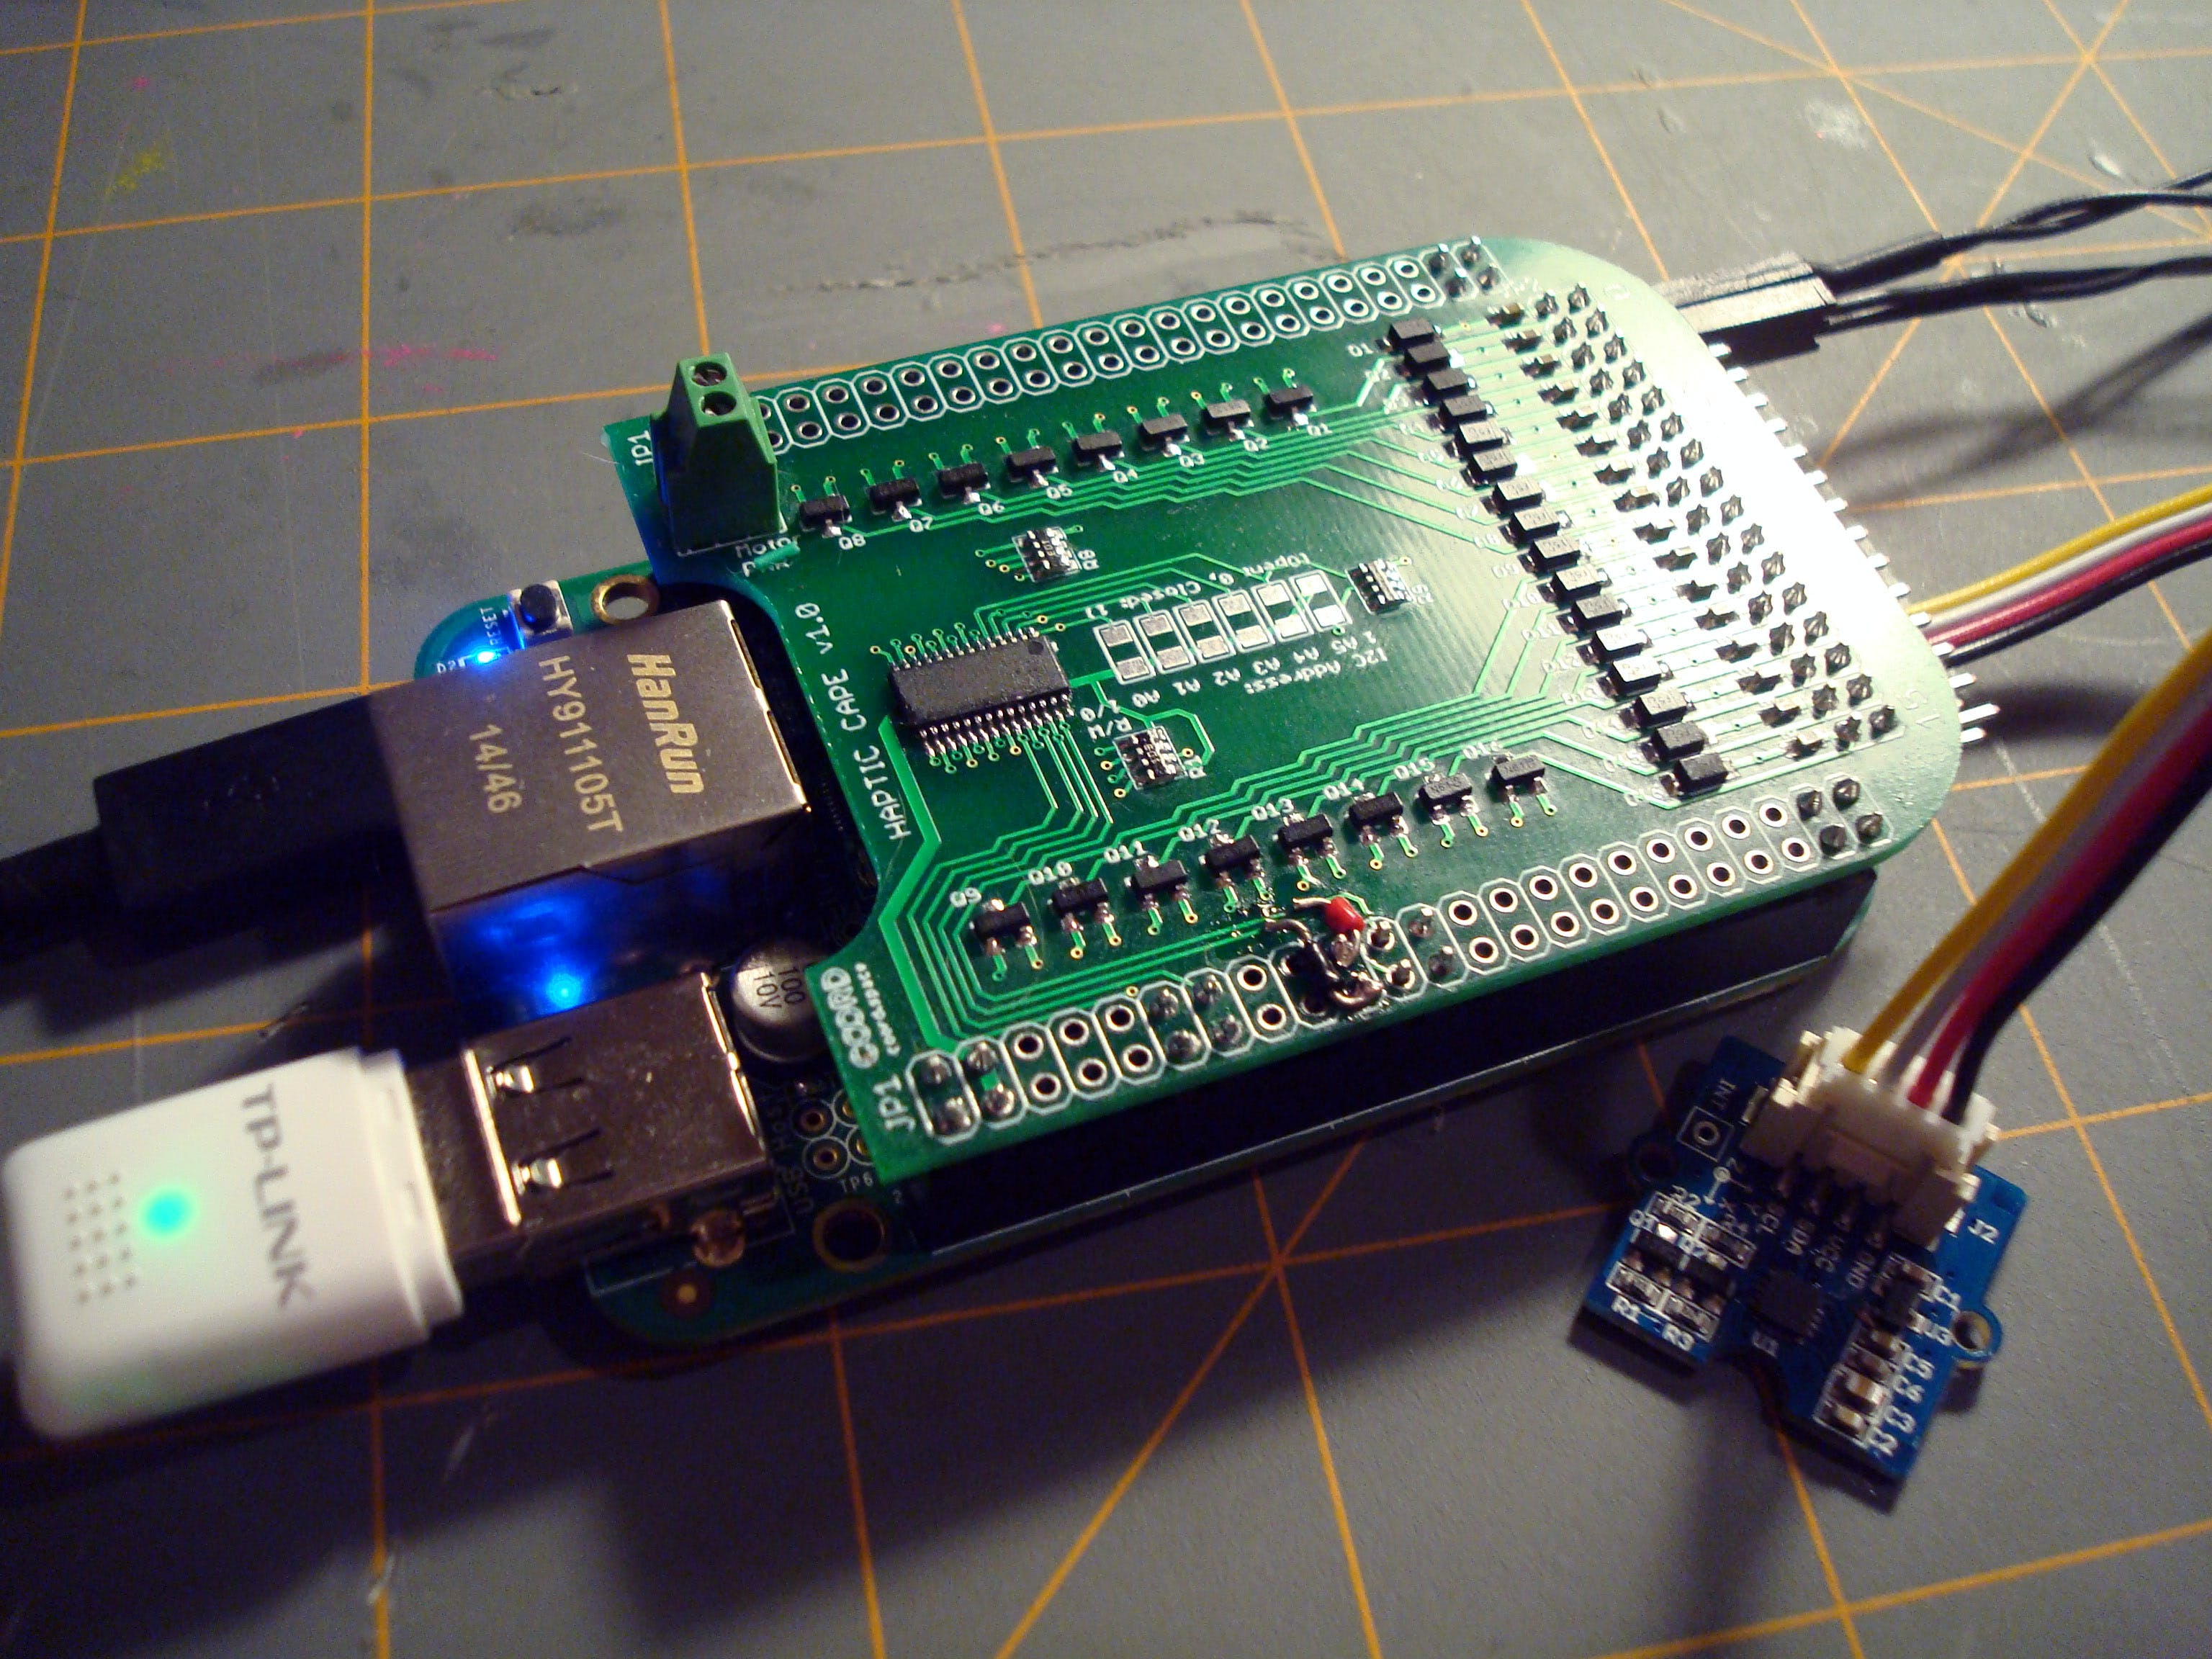 Here it is! The finished Haptic Cape plugged into a BeagleBone Green with a Seeed Grove Compass sensor. Don't worry about those little wires in the bottom middle, those were placed to overcome a trace routing error that has already been fixed in the bitbucket repository. Read on to learn more...